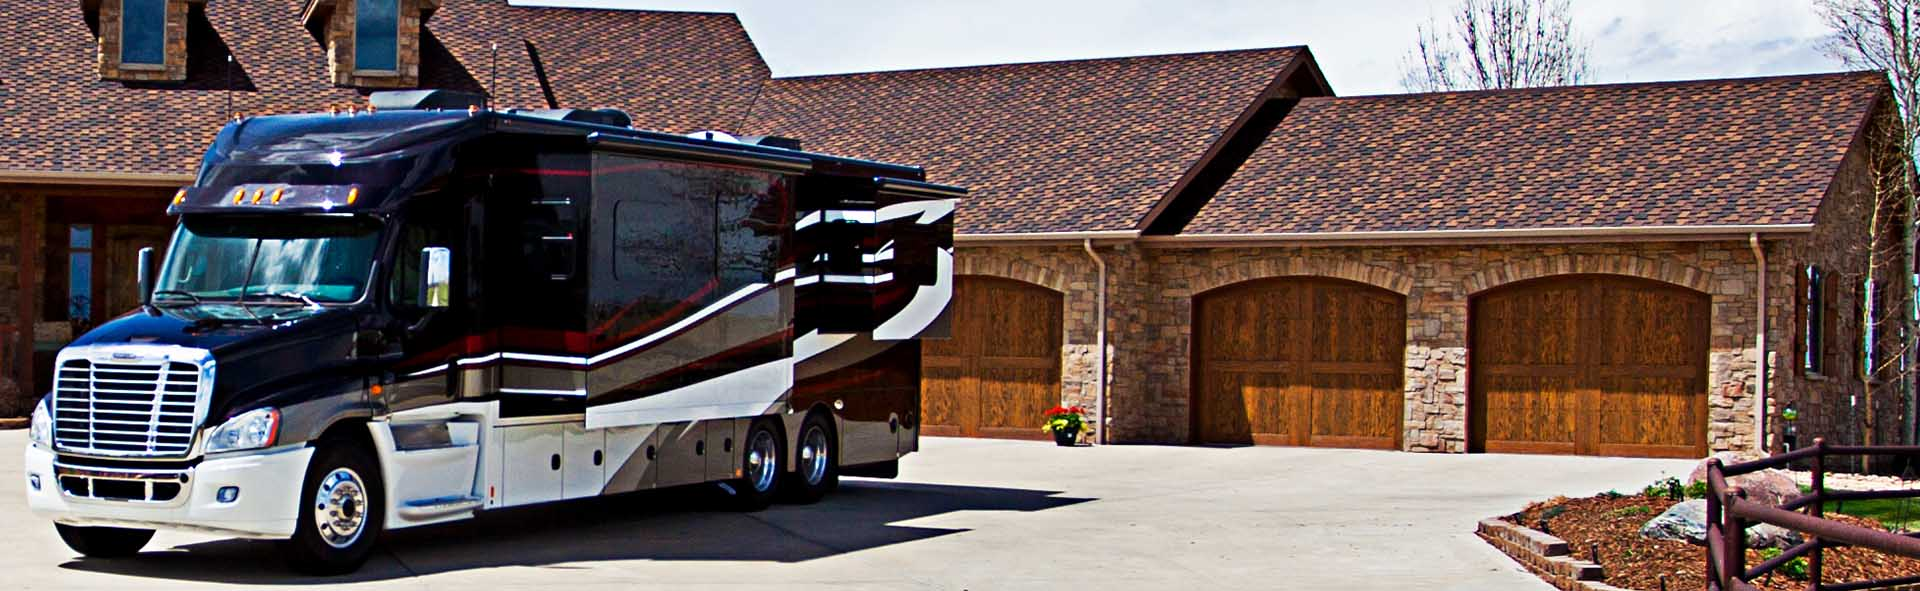 why-store-your-rv-professionally